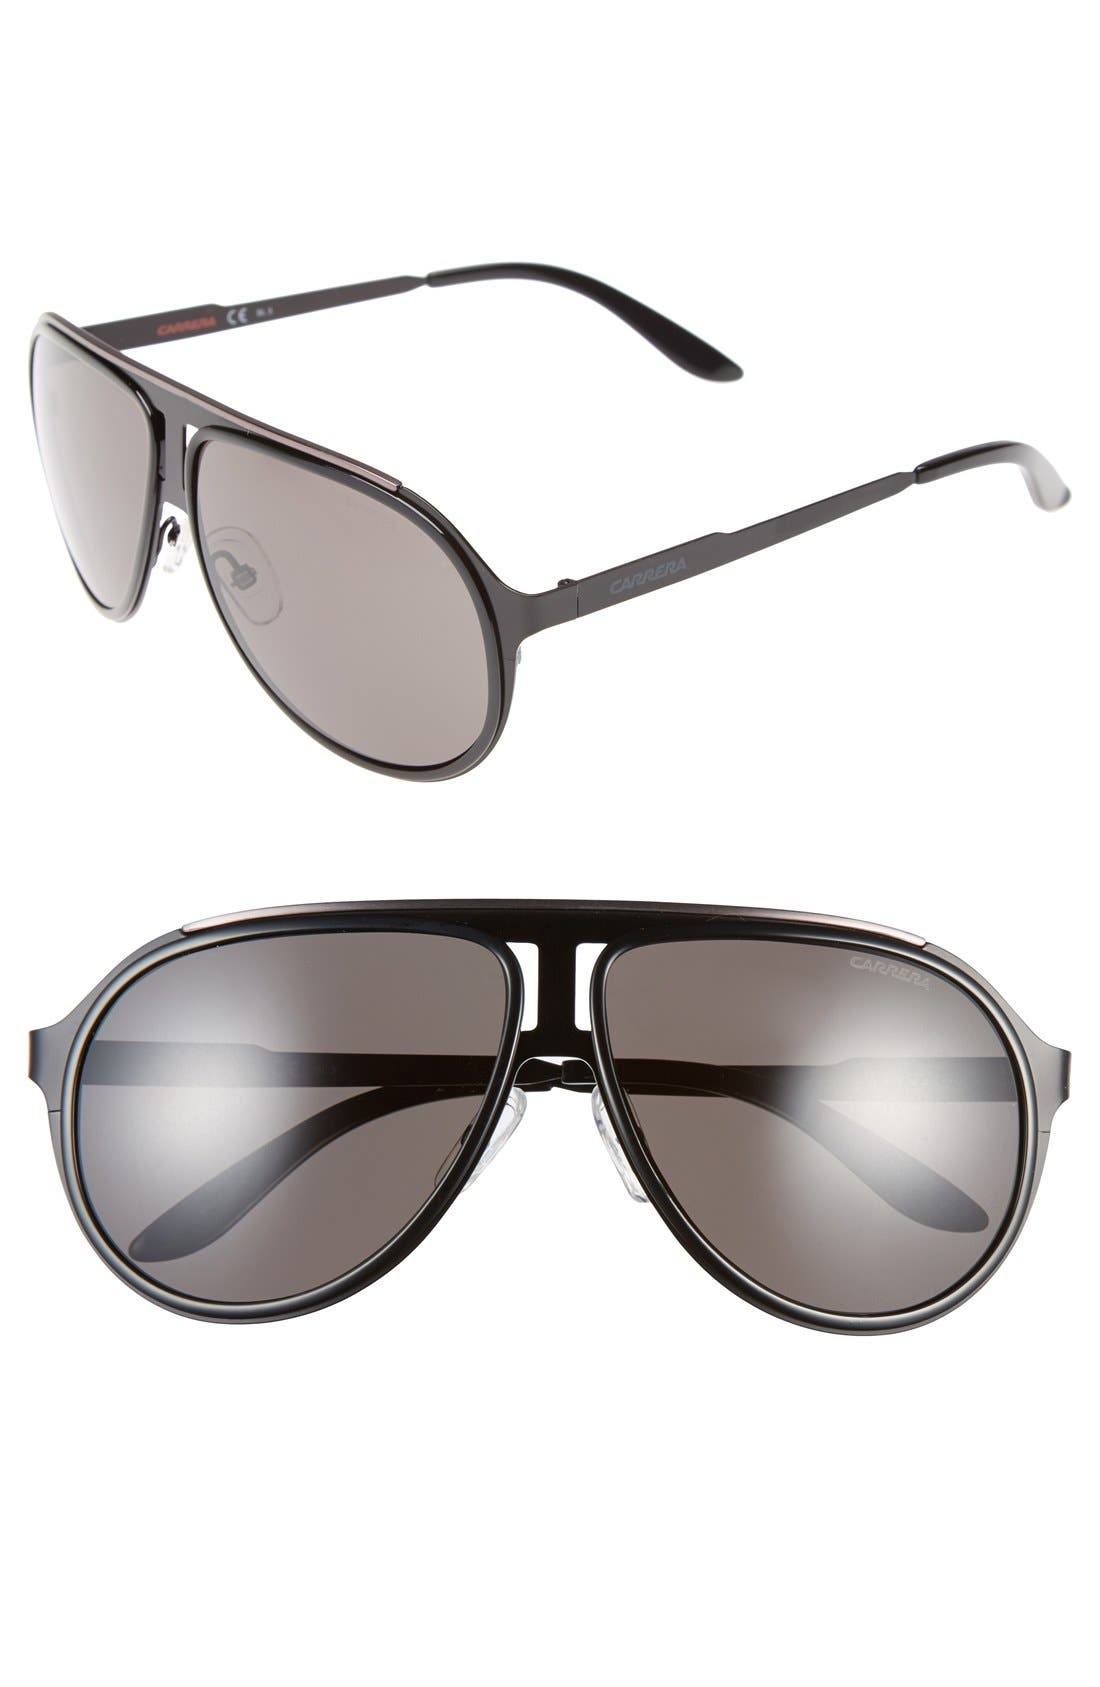 59mm Aviator Sunglasses,                         Main,                         color, 002